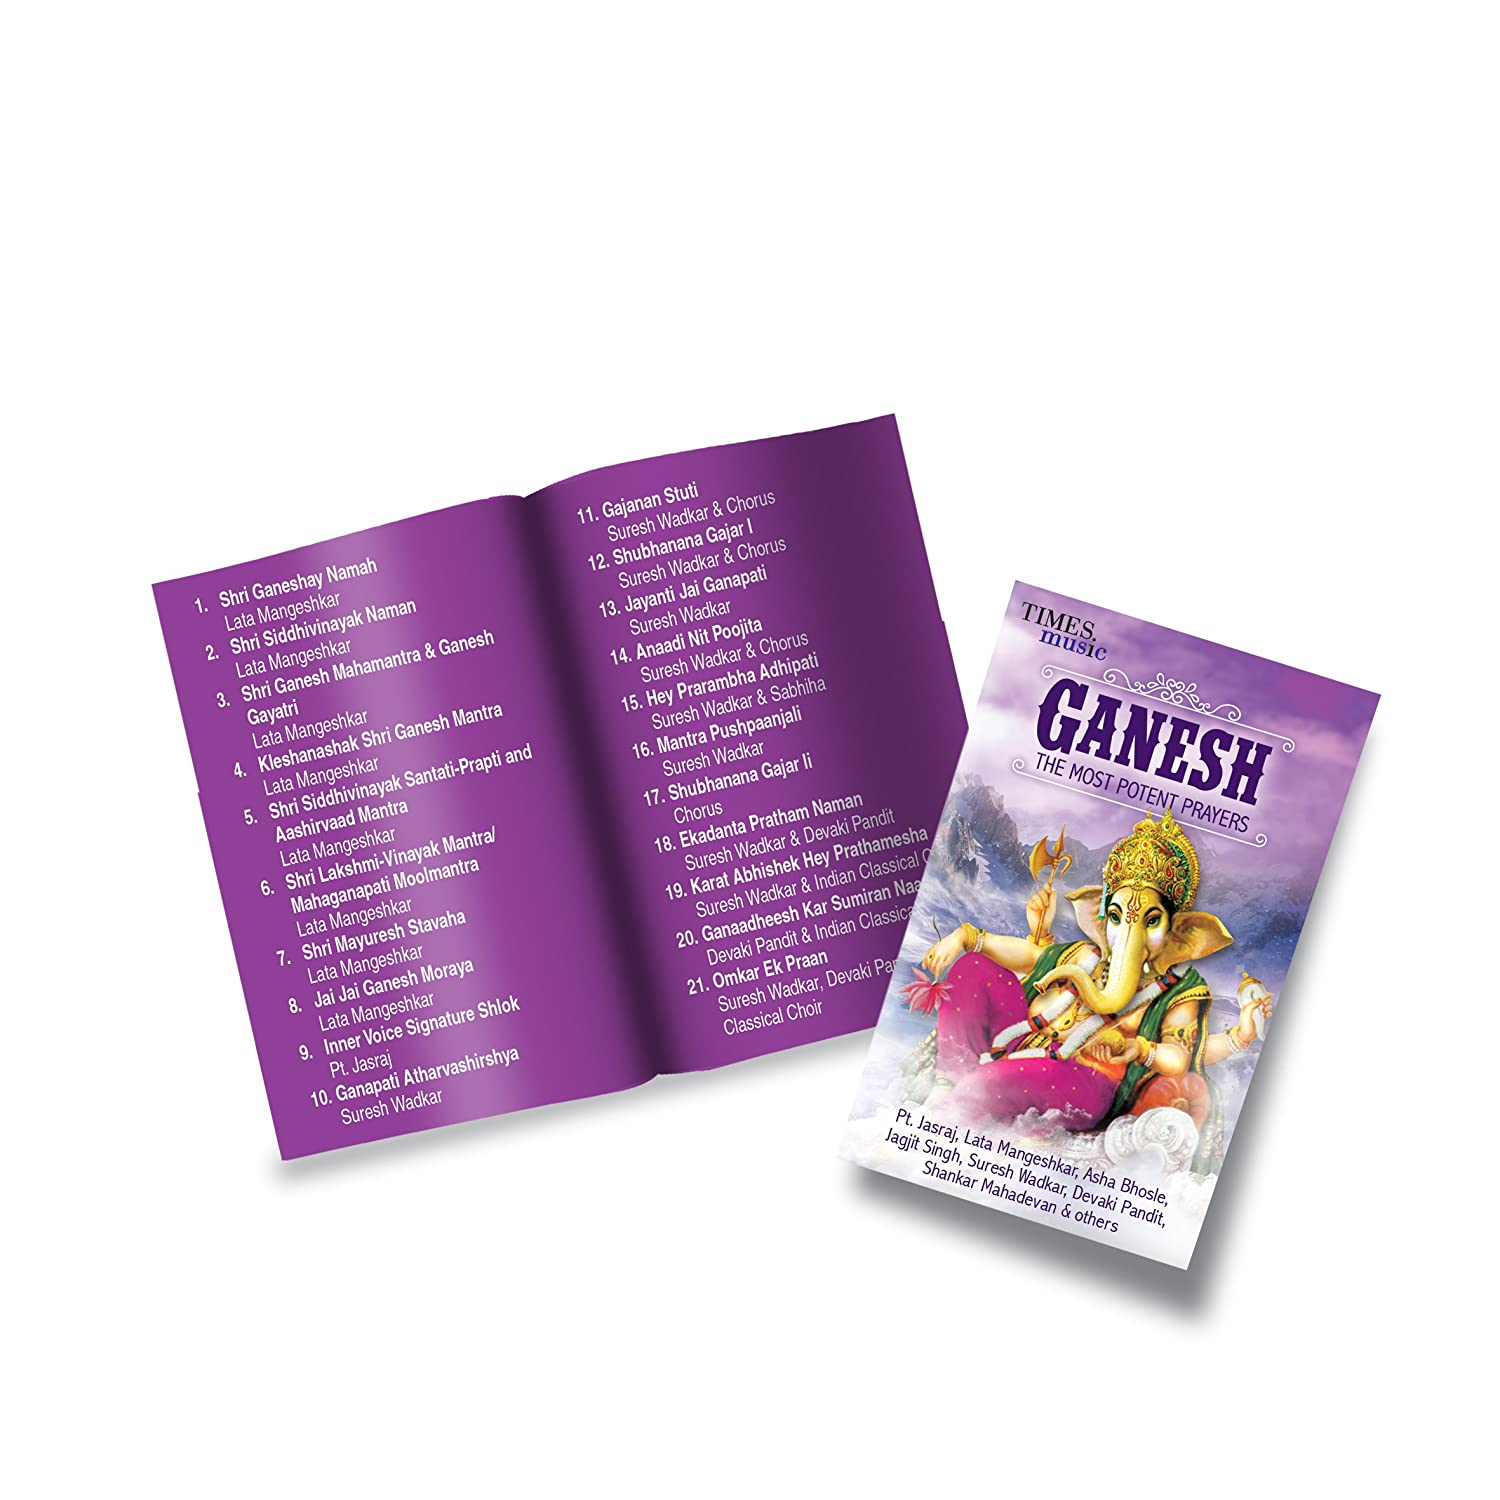 Music Card: Ganesh - 320 kbps MP3 Audio (4 GB)